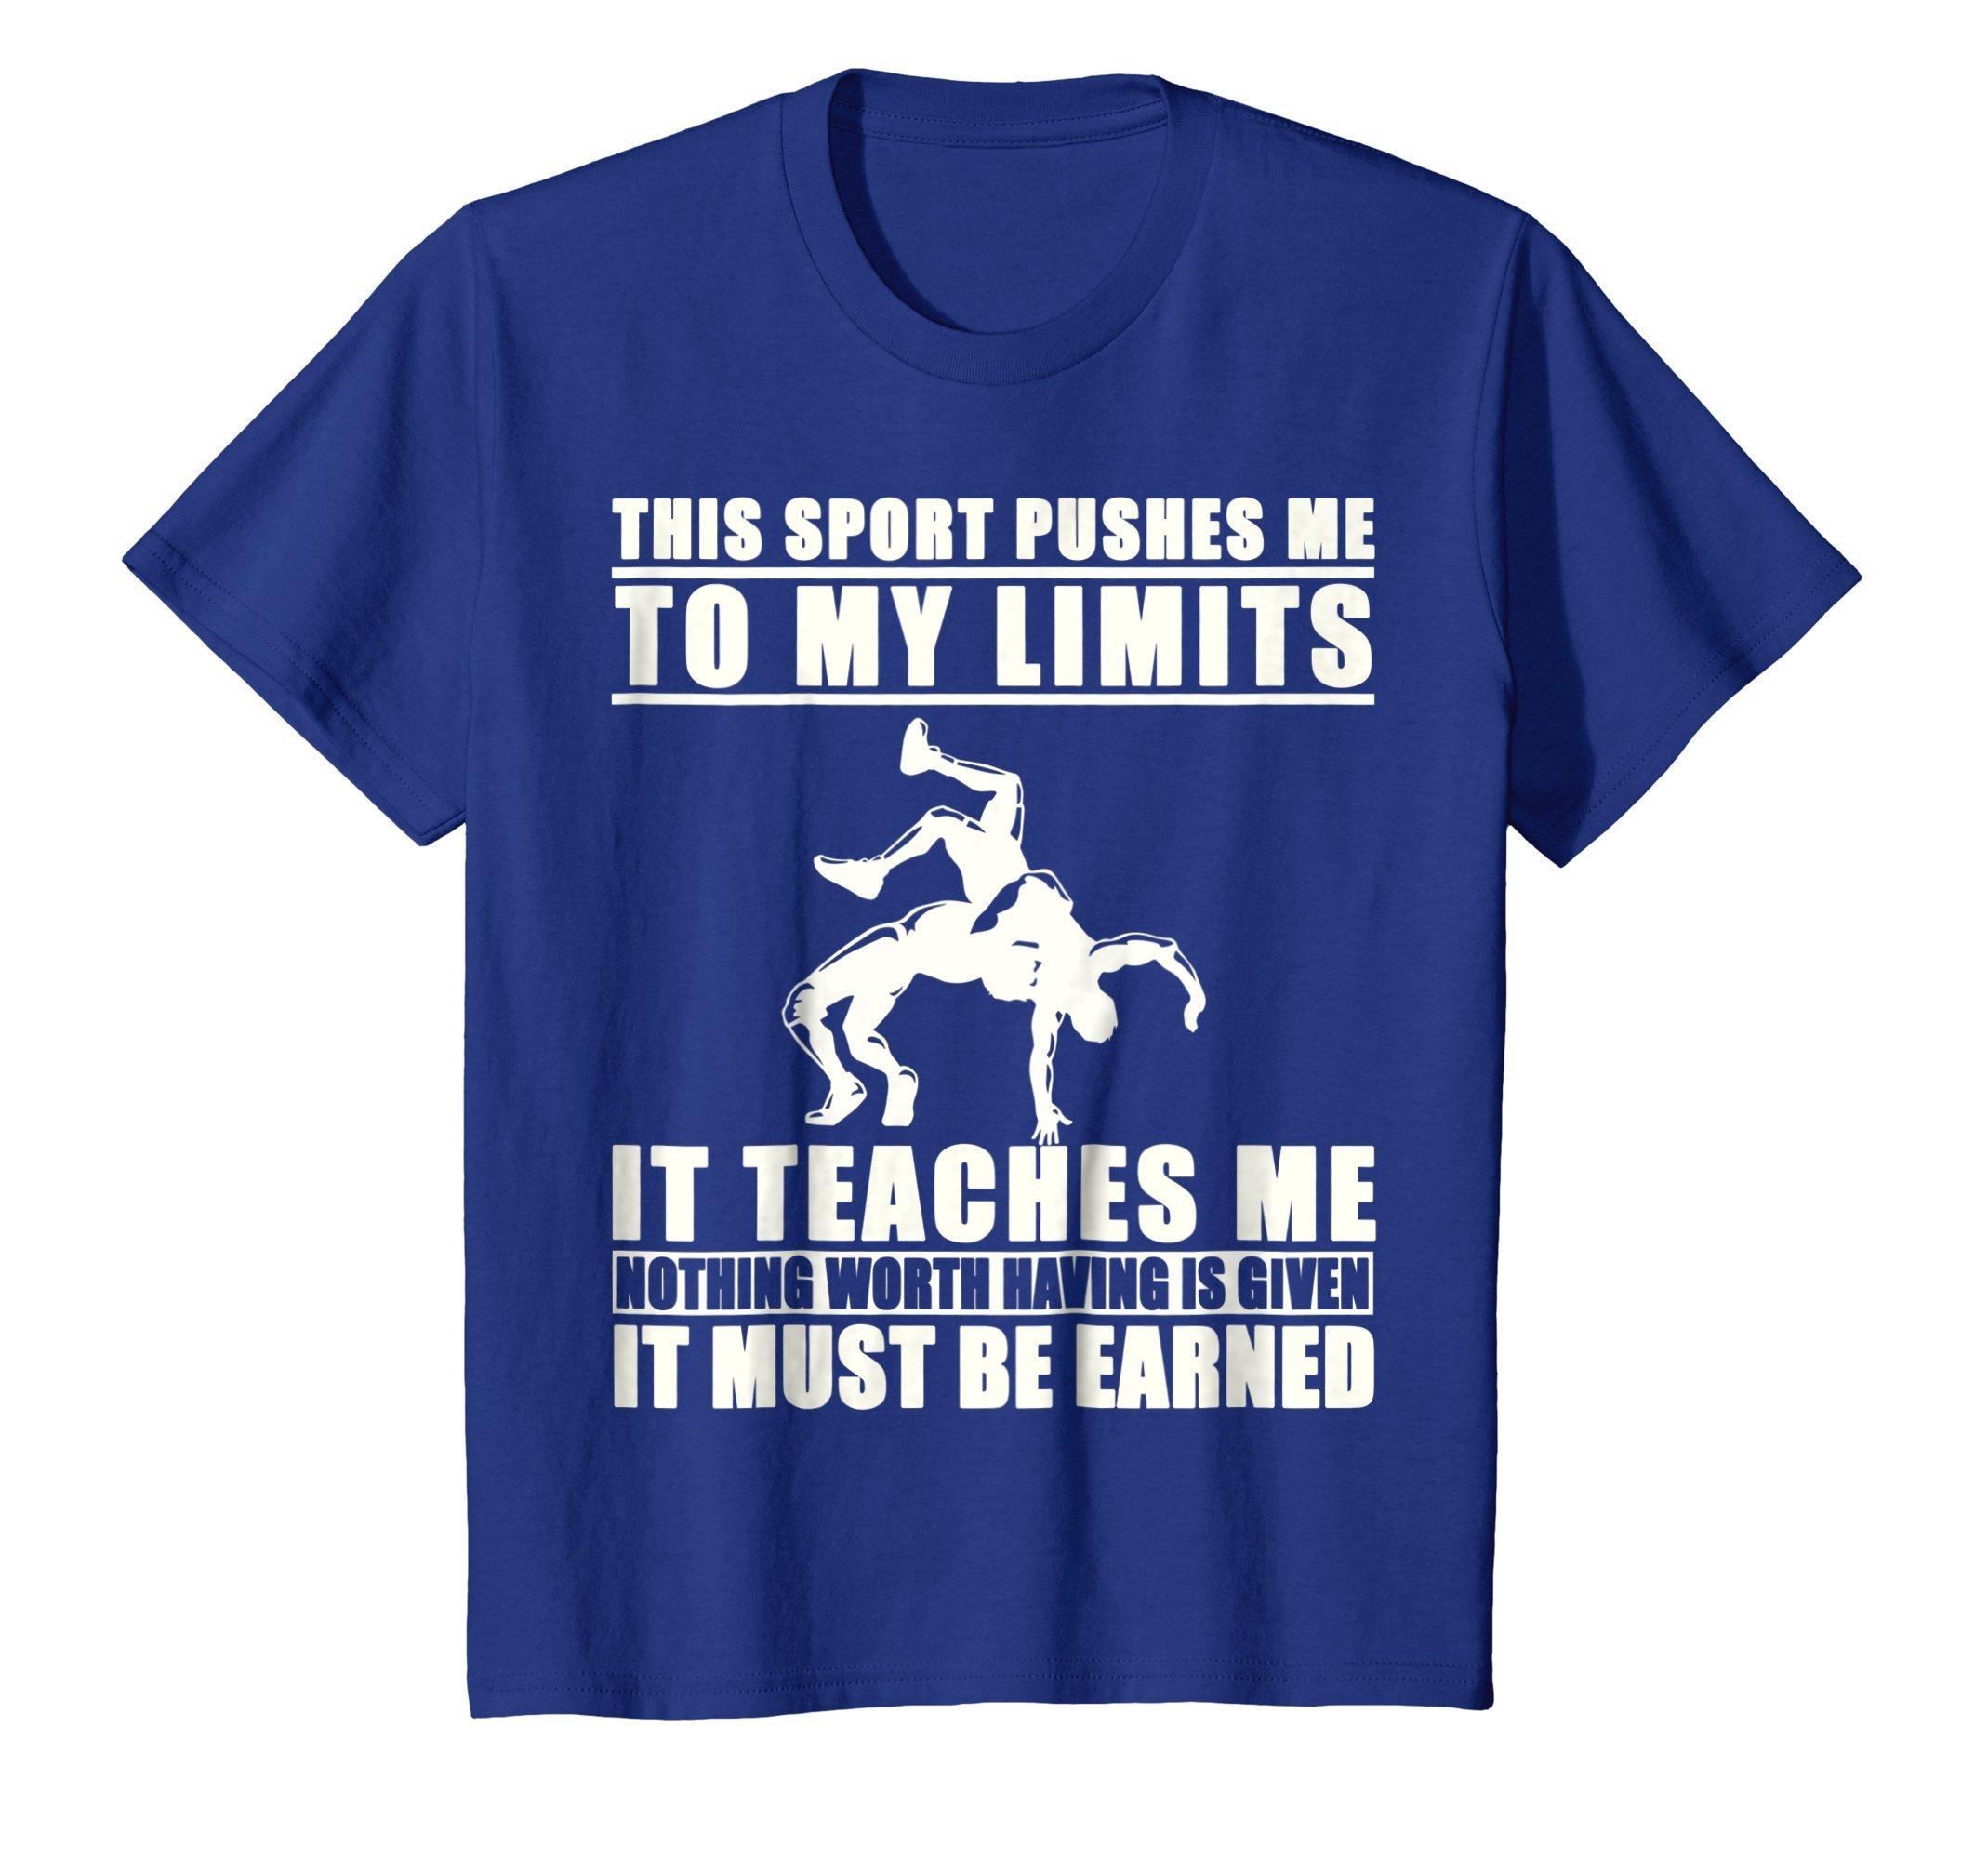 Kids It Must Be Earned Wrestling T-Shirt 12 Royal Blue by It Must Be Earned Wrestling Shirt